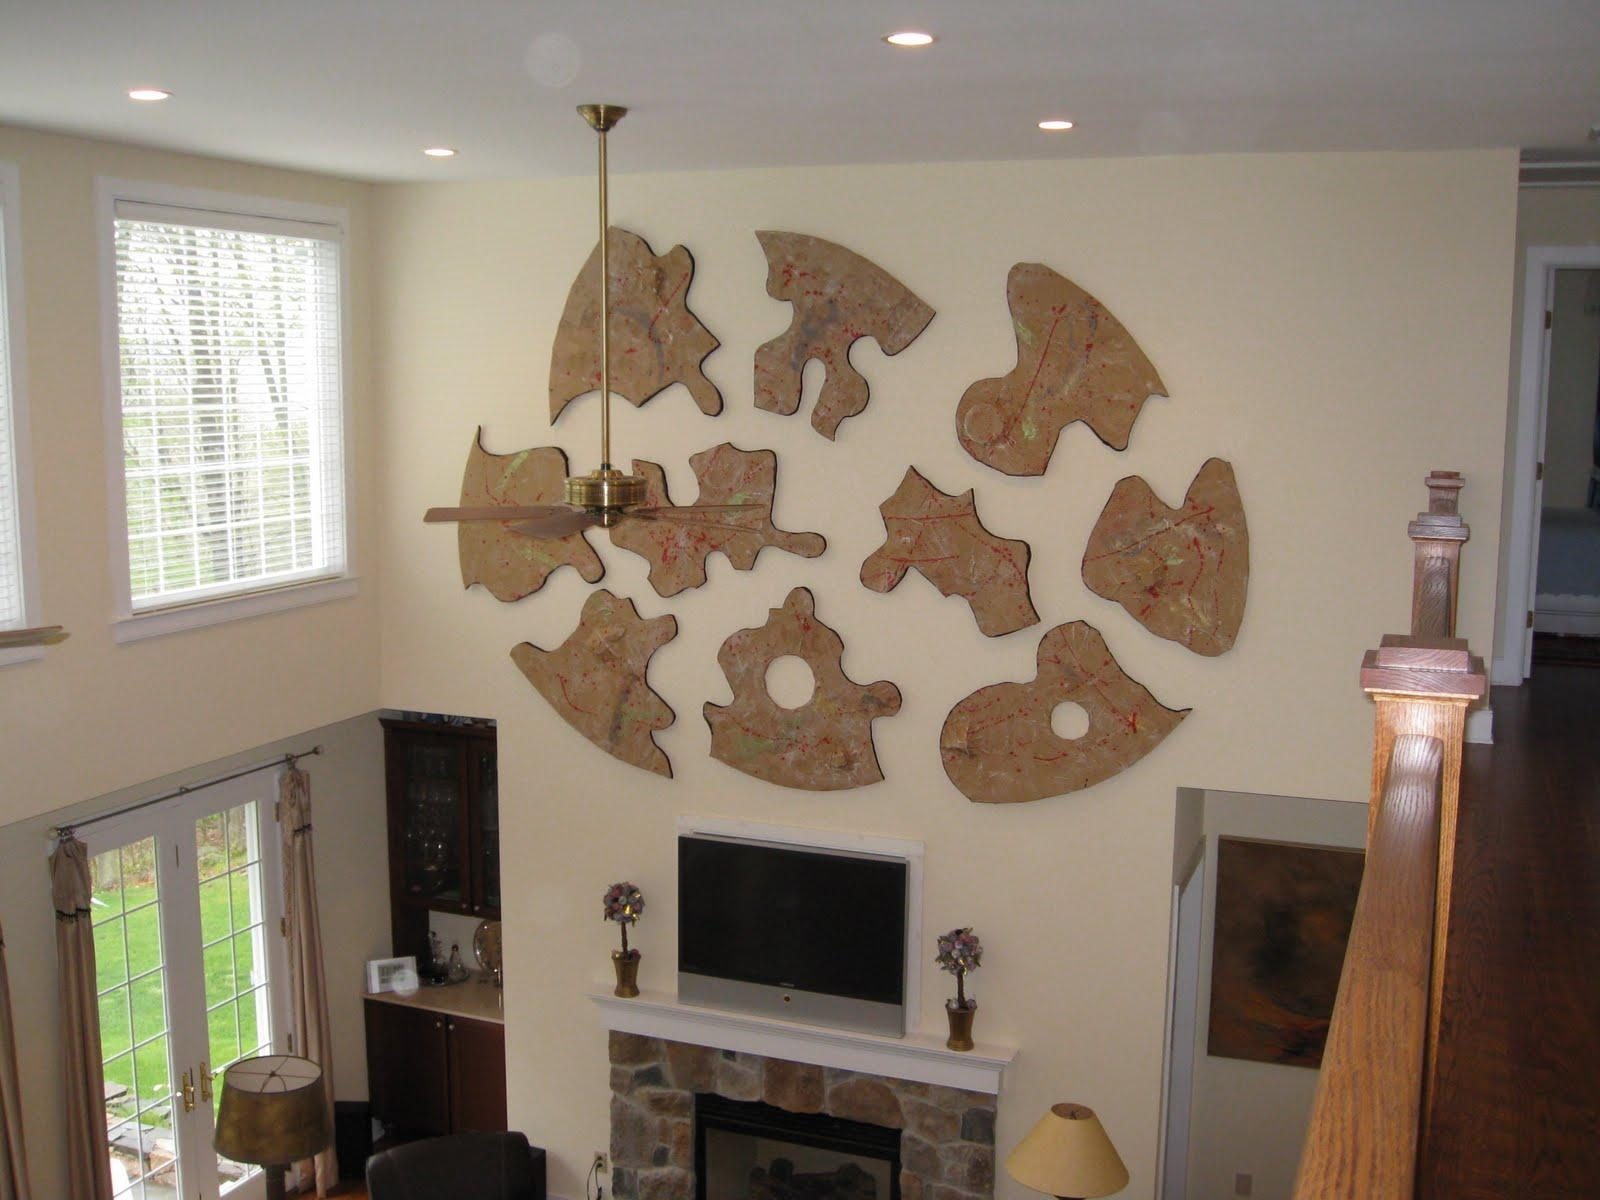 Astounding Pieces Of Puzzle Large Wall Art Feat Tv Fireplace Also With Regard To Fireplace Wall Art (View 9 of 20)